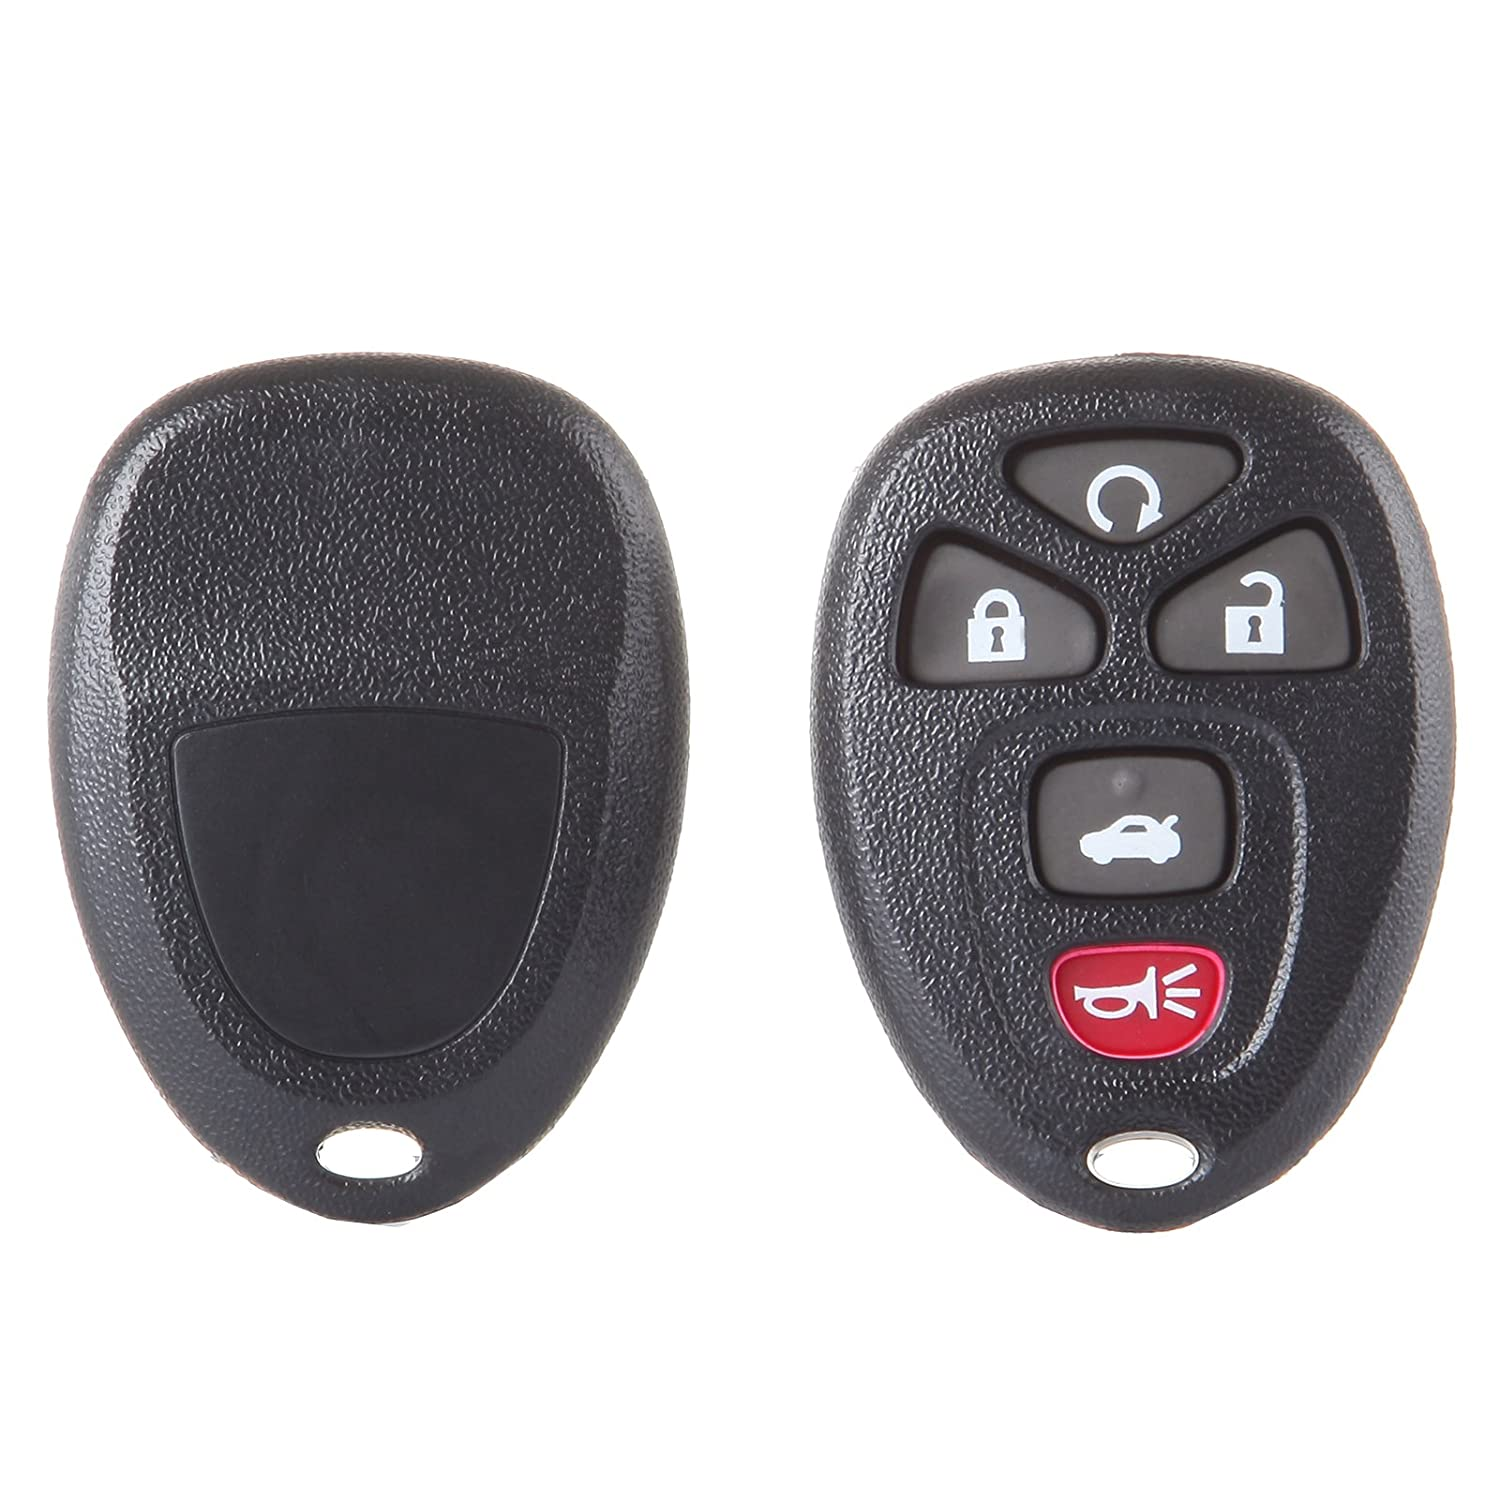 ECCPP Replacement fit for Uncut Keyless Entry Remote Control Car Key Fob Shell Case Buick LaCrosse//Chevrolet Cobalt Malibu//Pontiac G5 G6 Grand Prix KOBGT04A Pack of 1